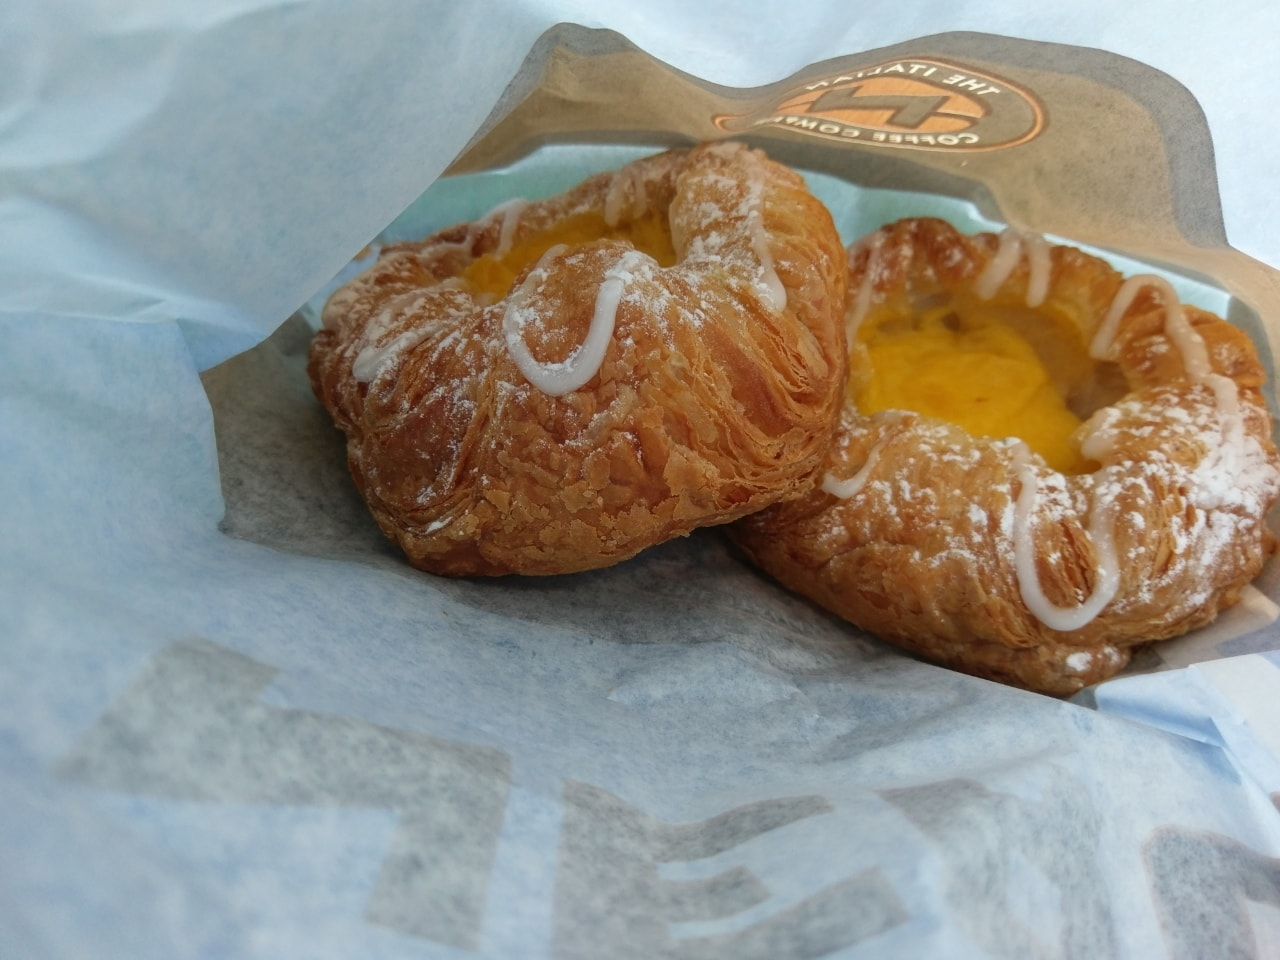 Pastries, more than 2